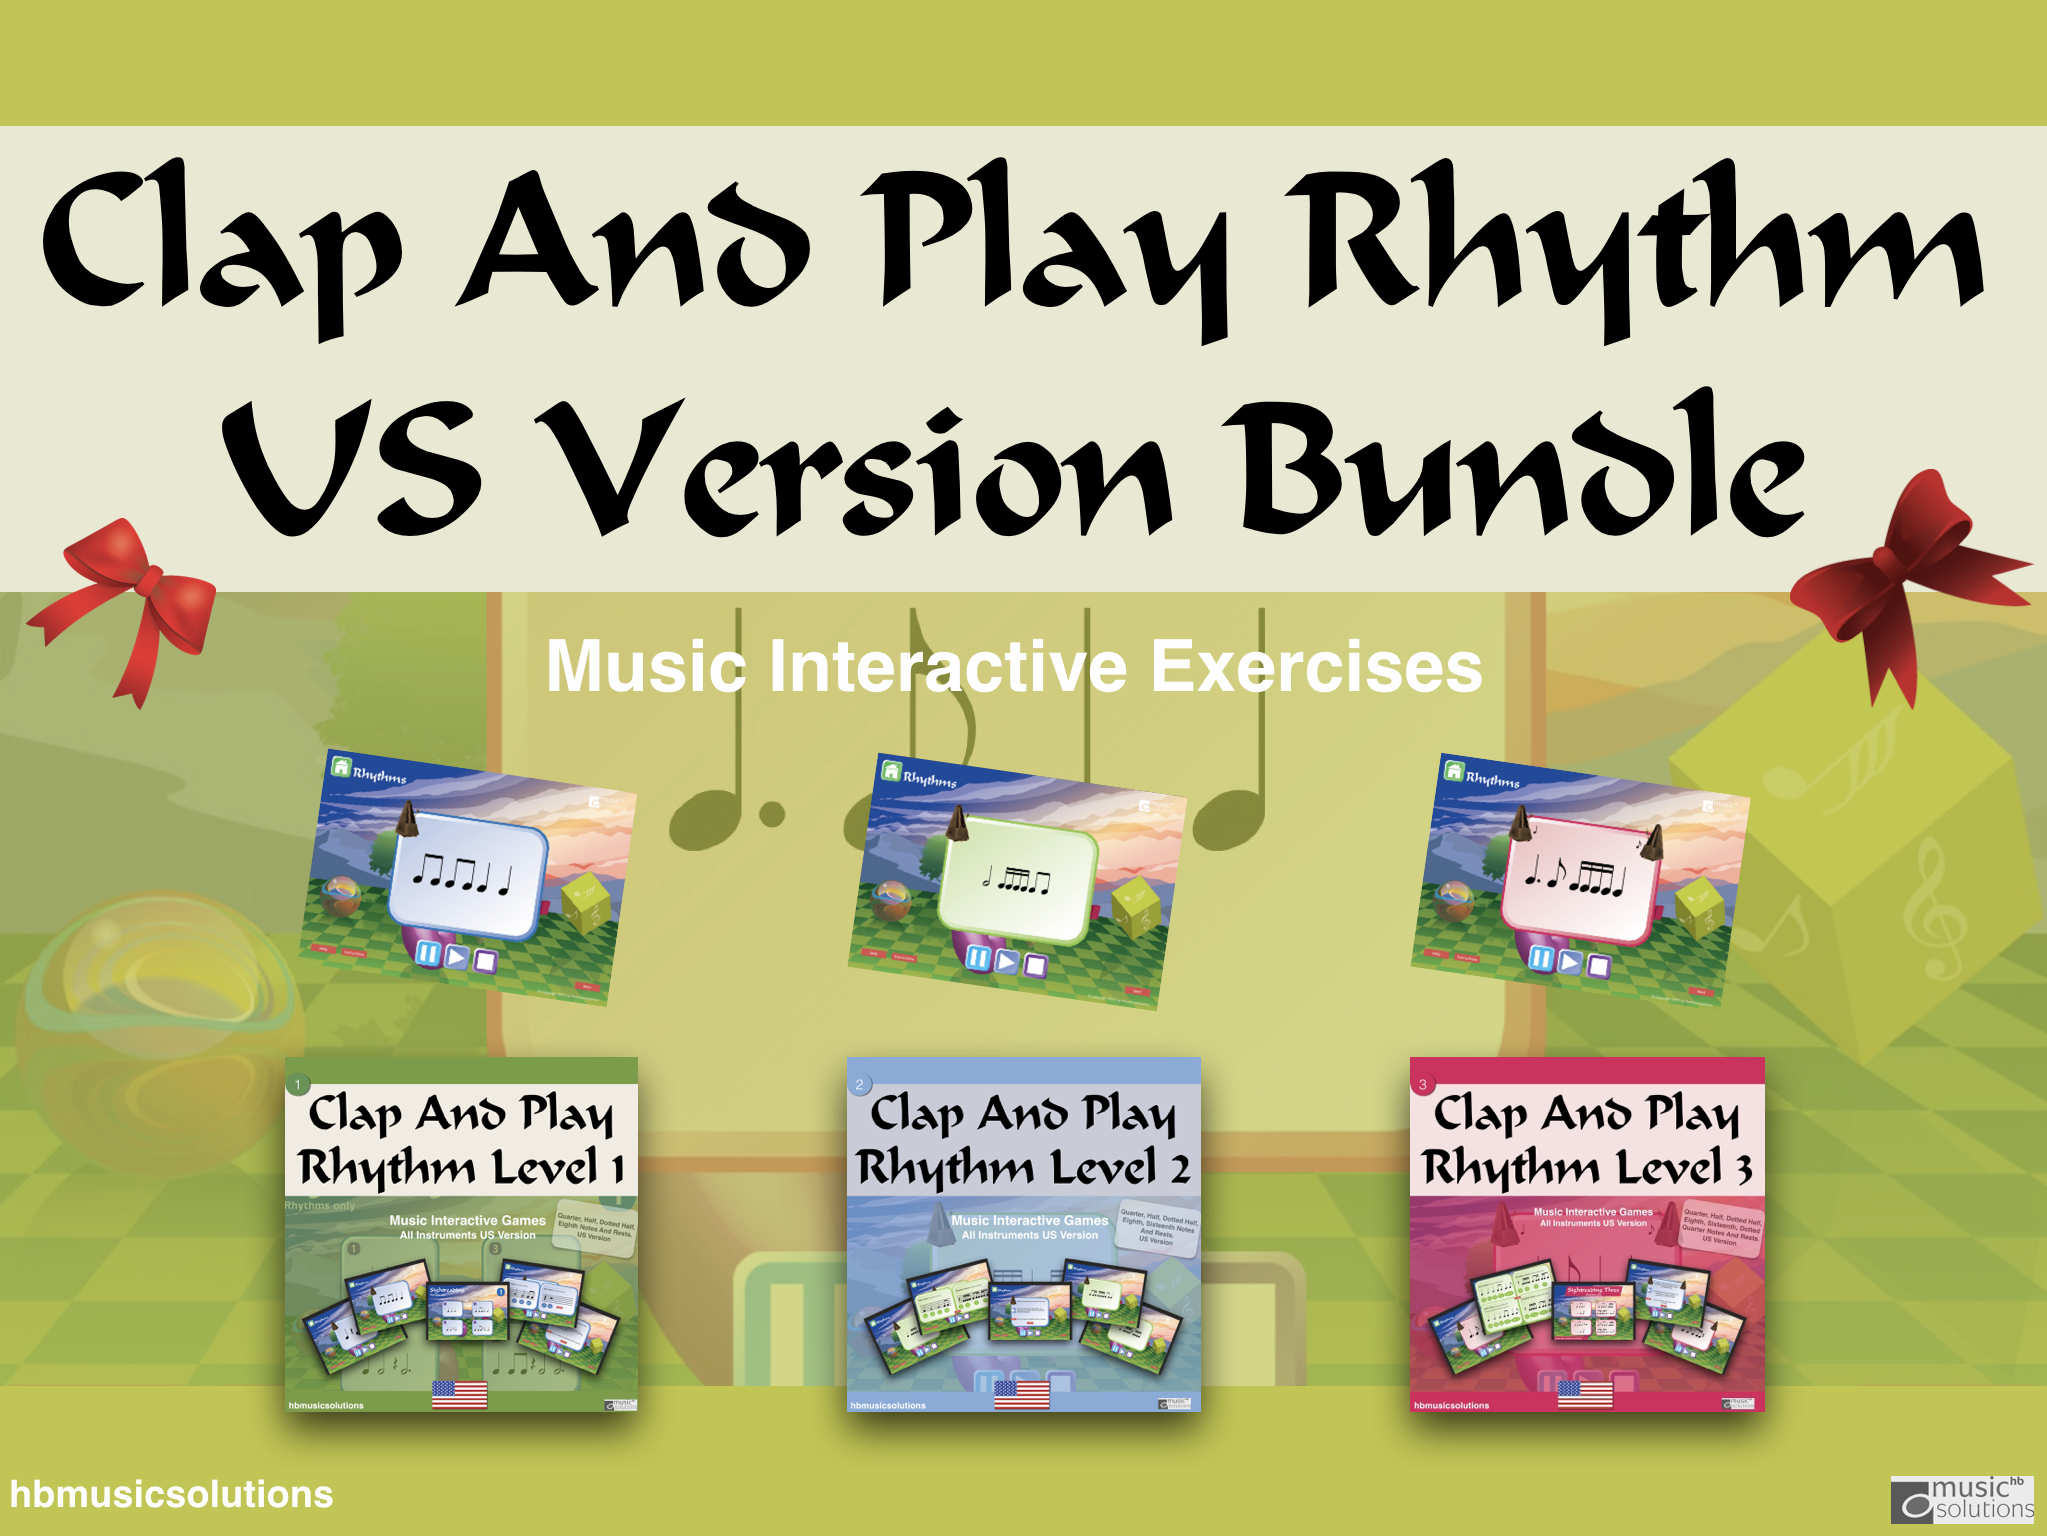 Clap And Play Rhythms Levels 1-3 US Version Bundle